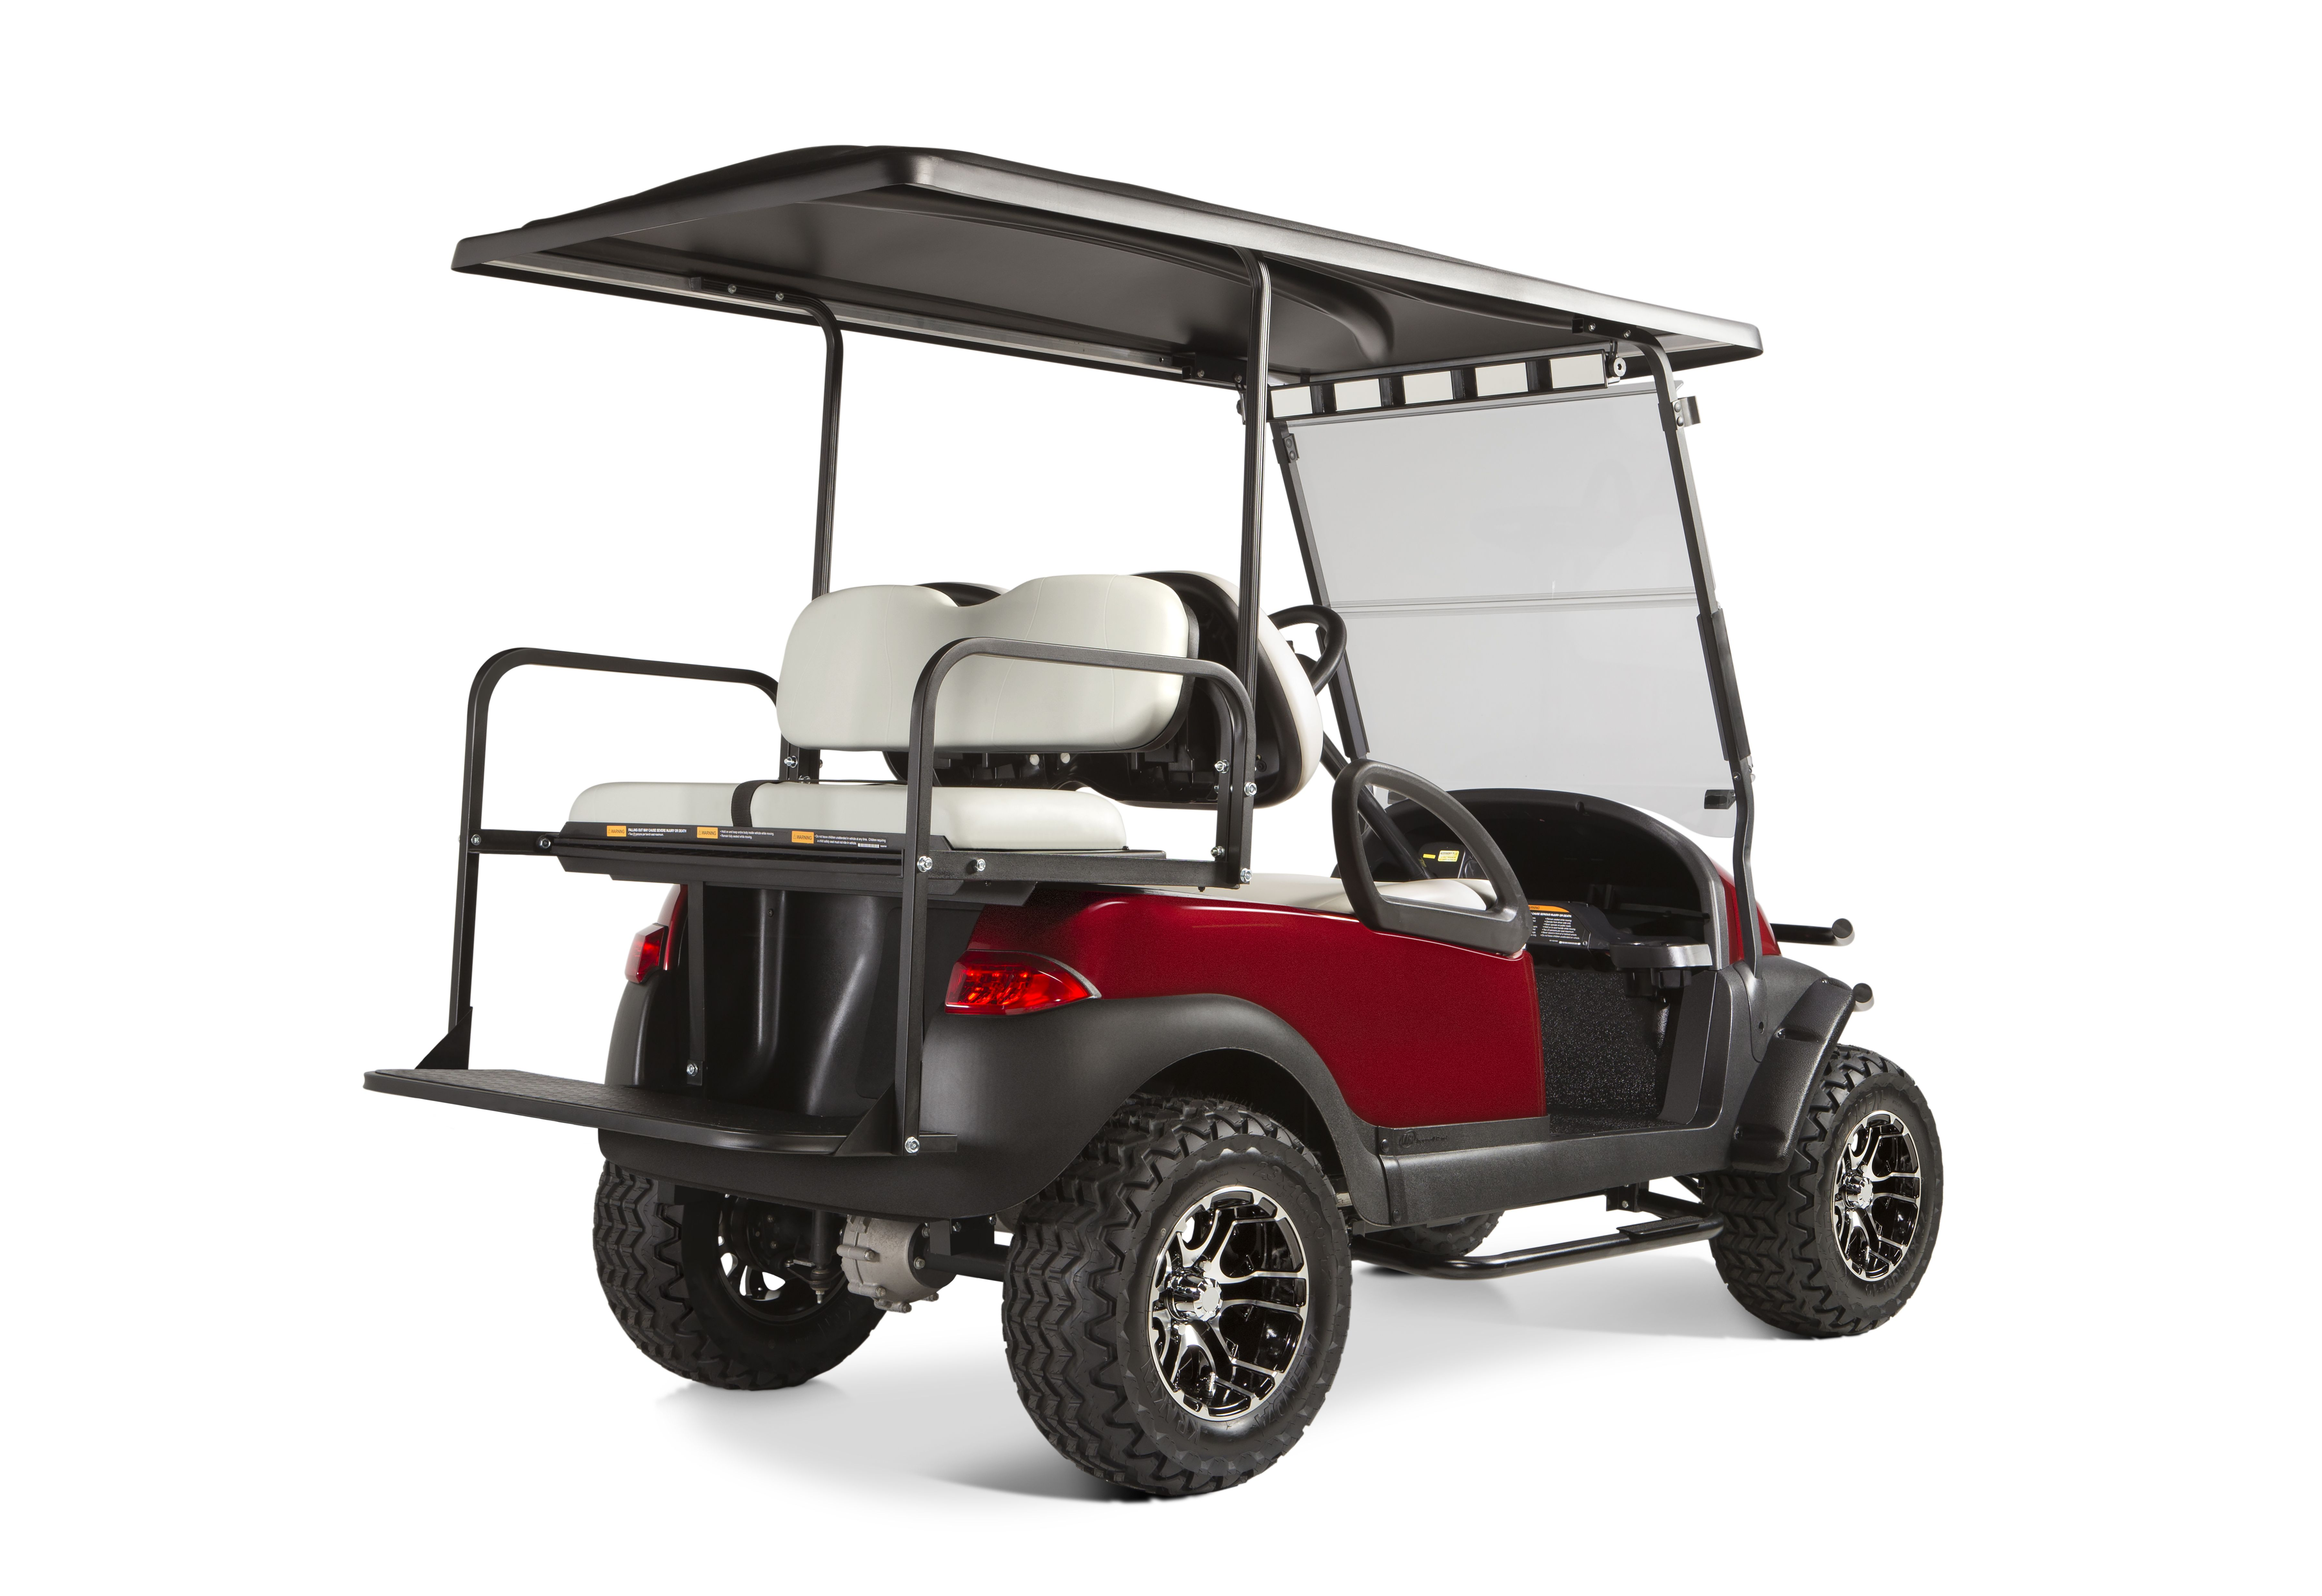 Electric Lift Kits : New inch lift kit for club car precedent electric golf